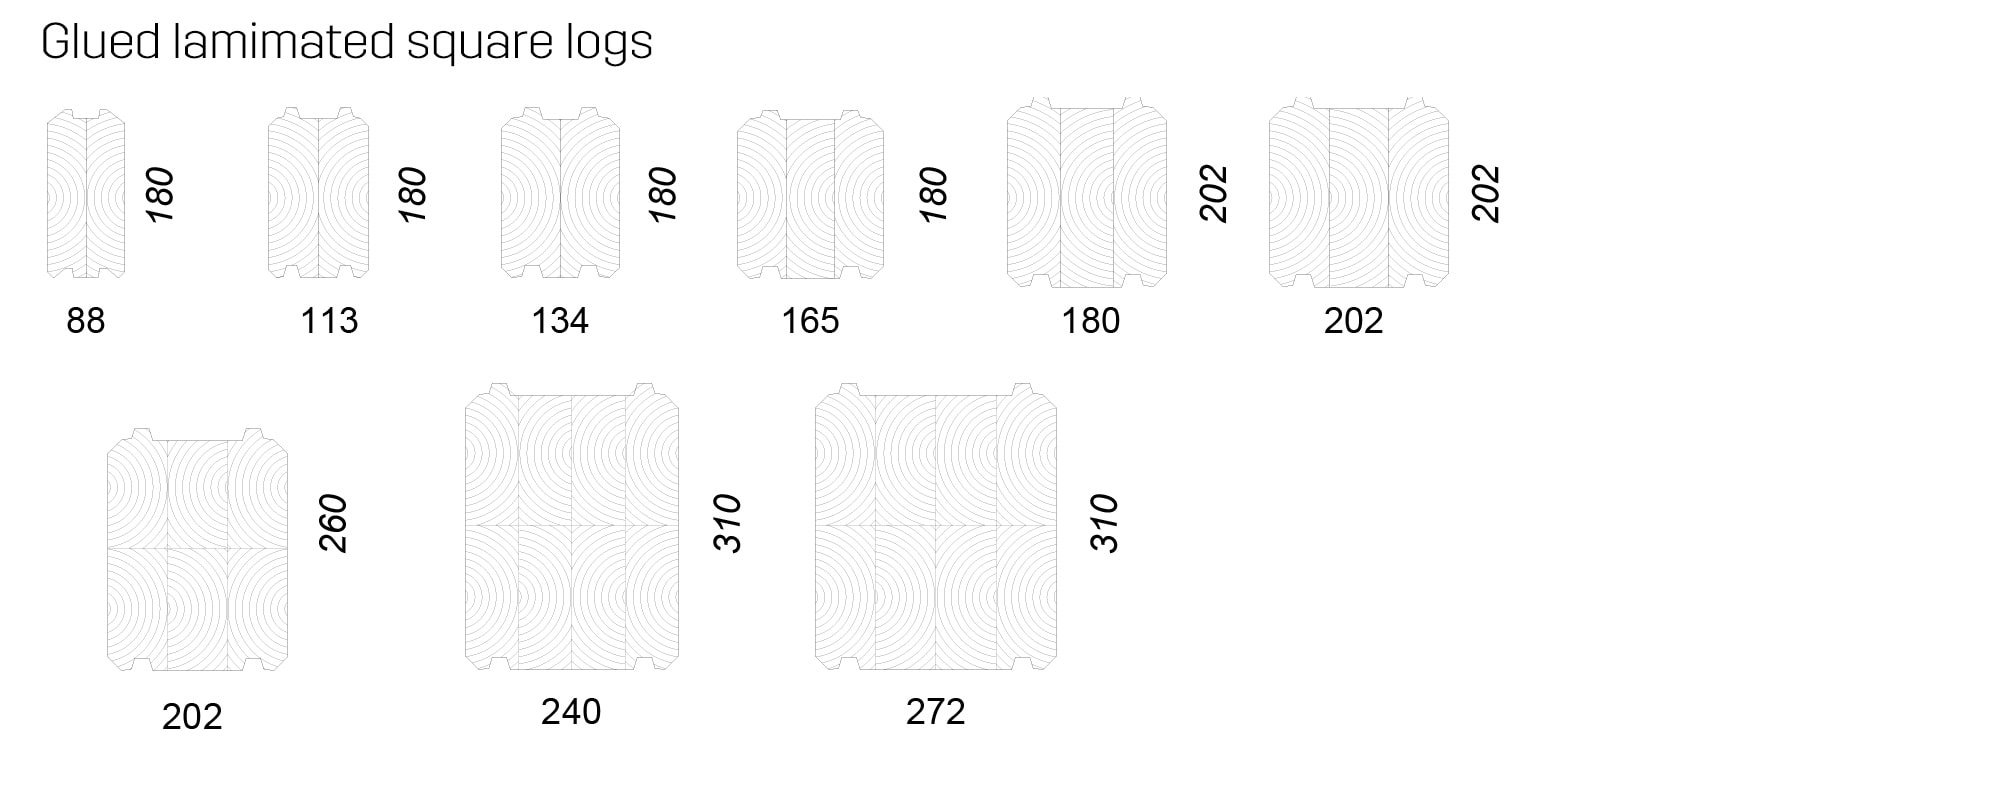 Glued lamimated square logs